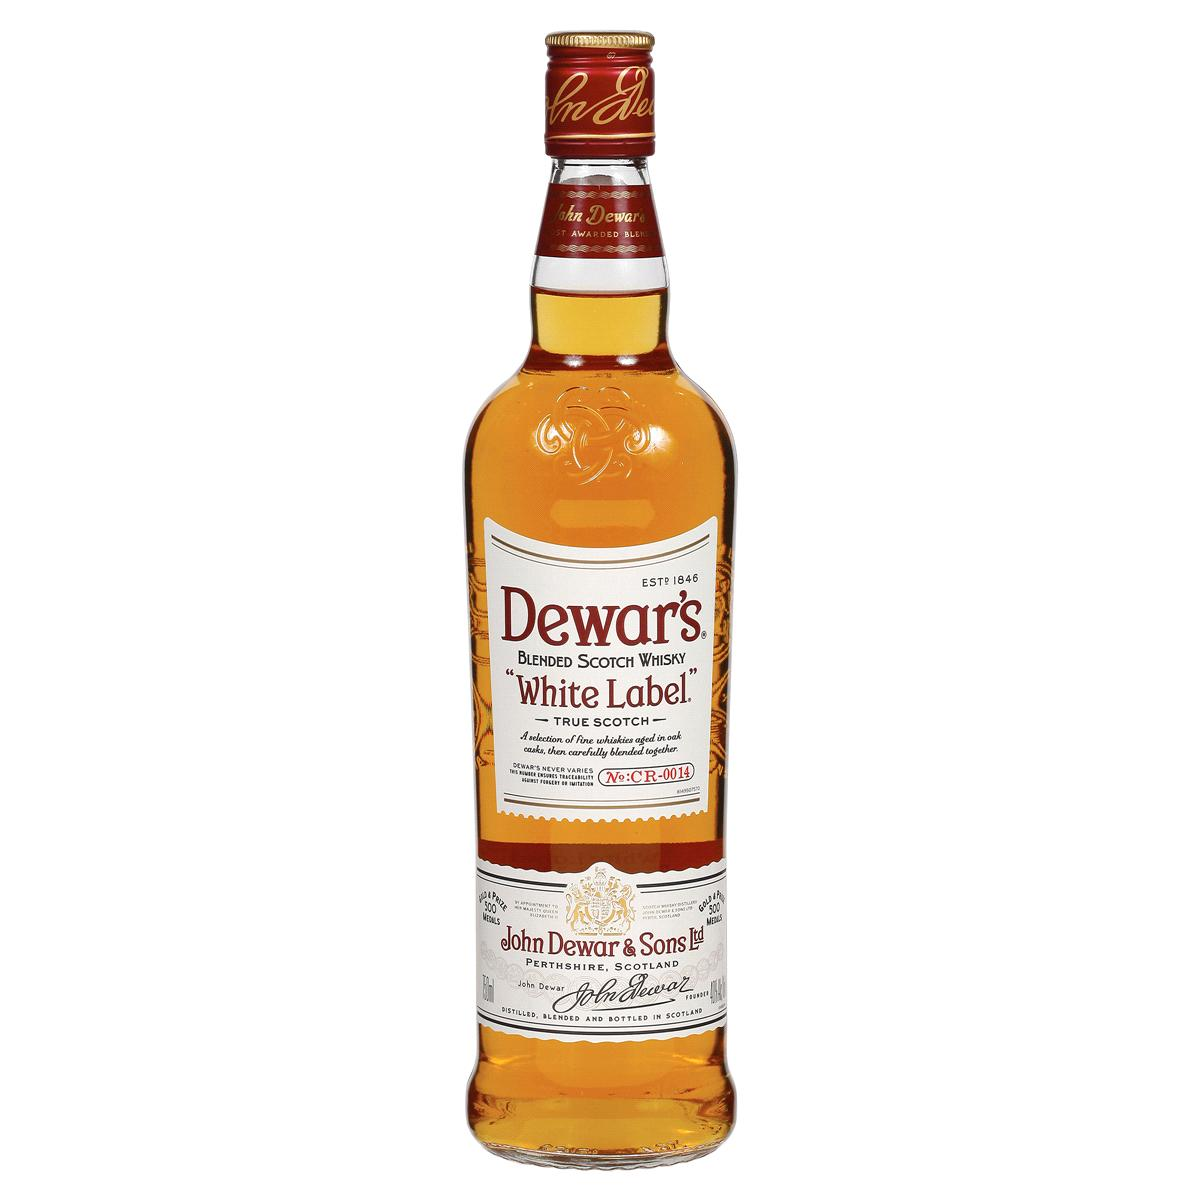 stm>Dewar's White Label Scotch Whisky 1 ltr